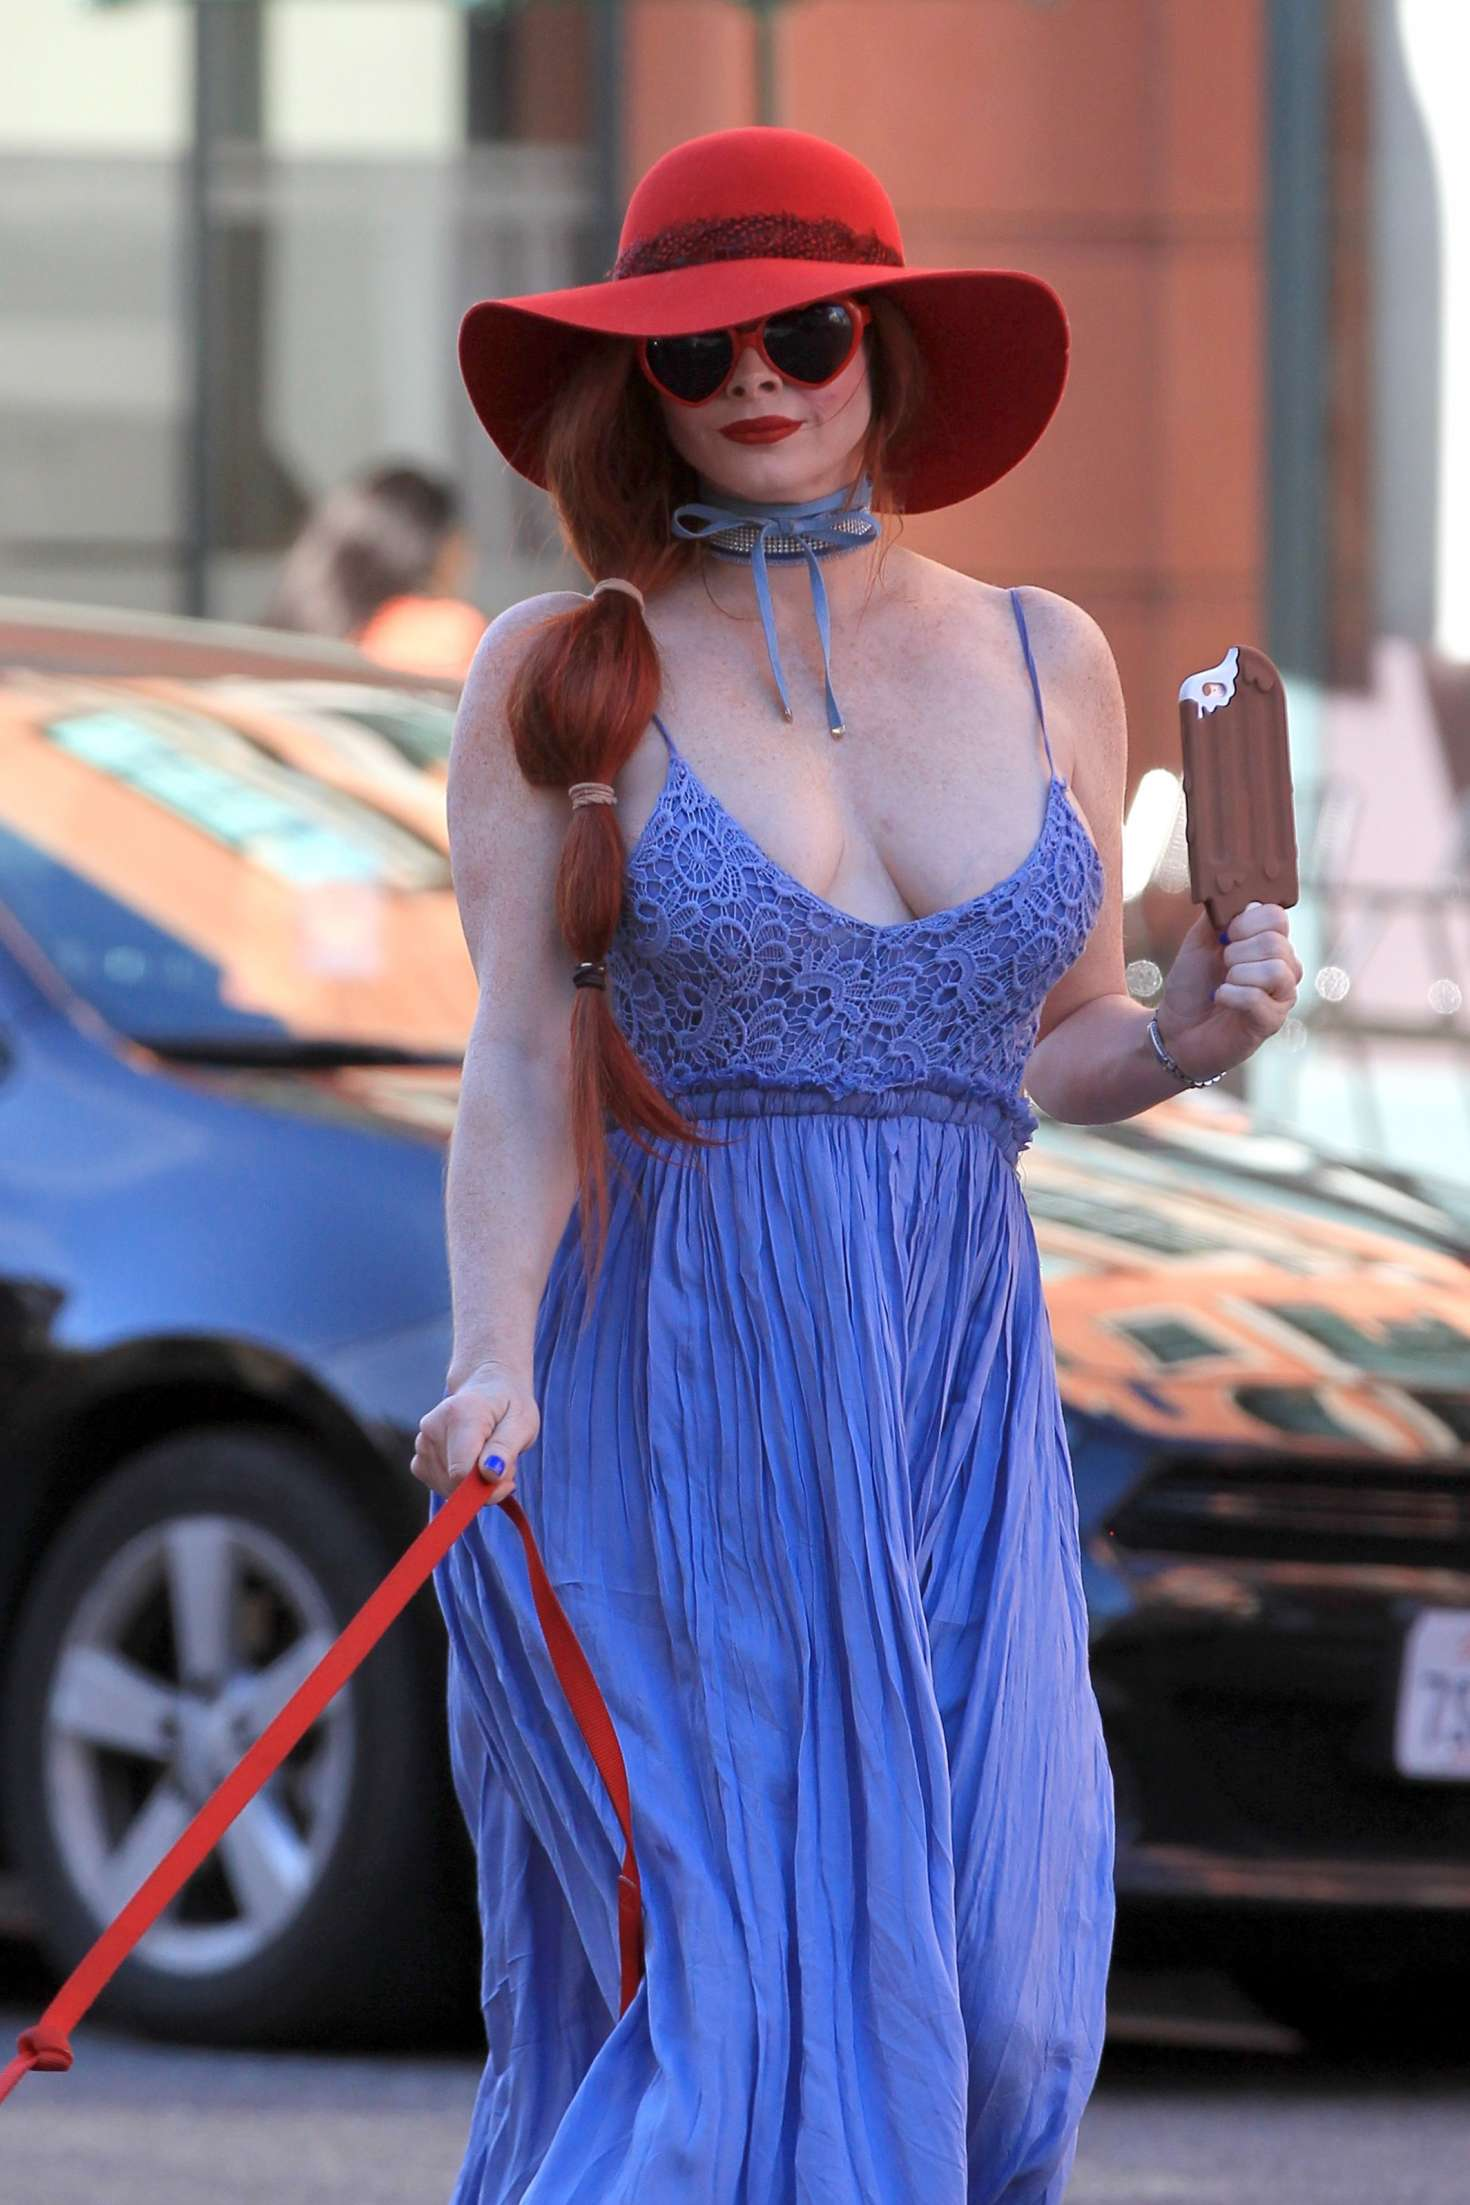 Phoebe Price in Blue D...